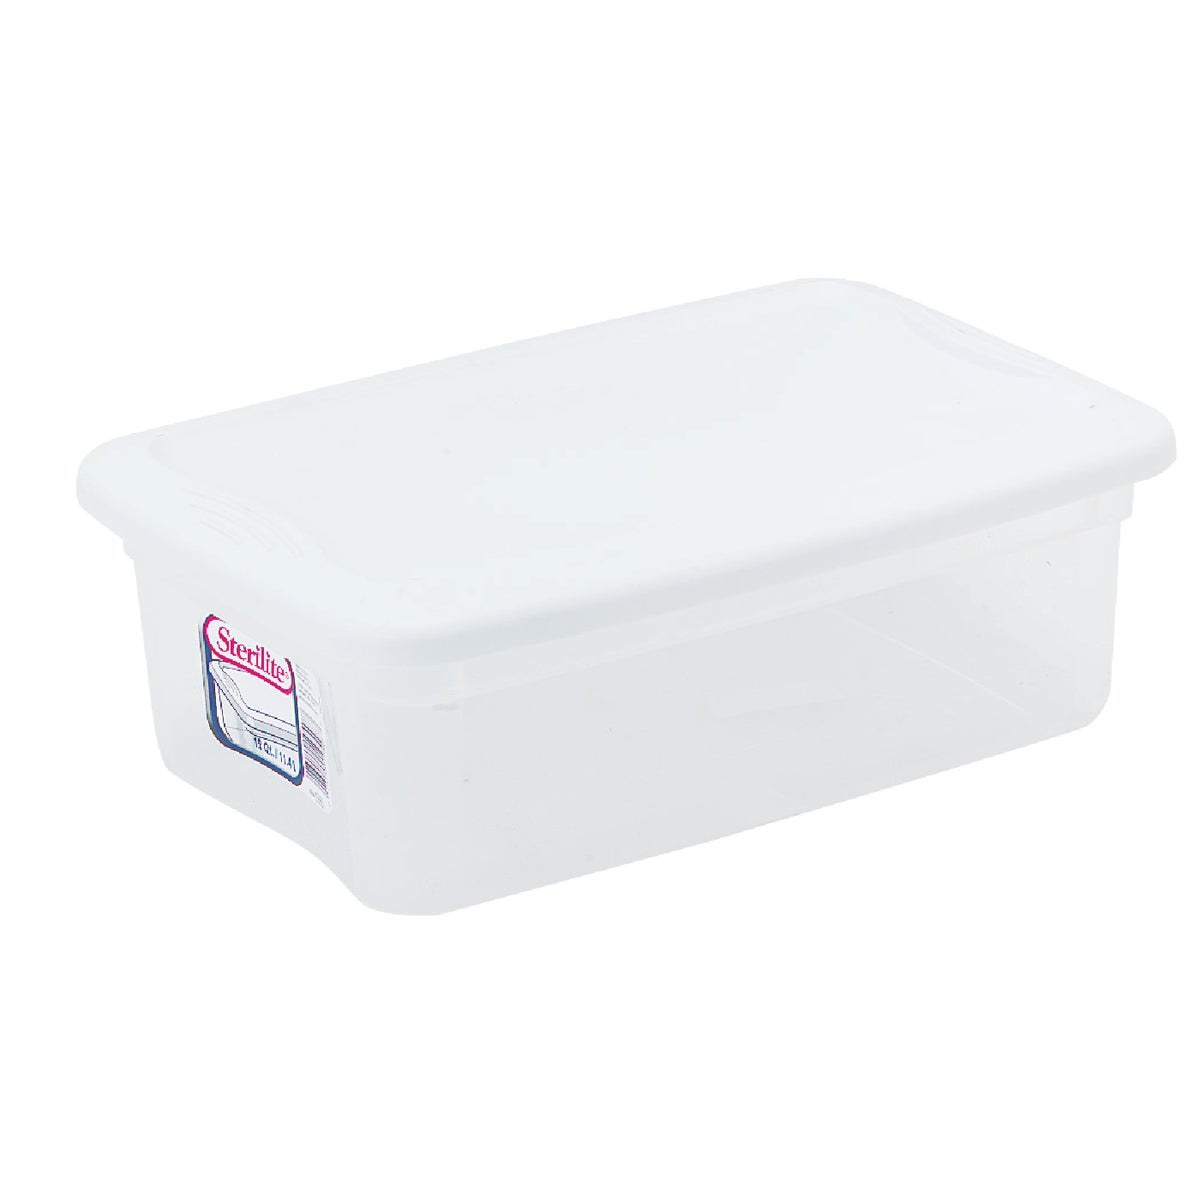 16 QUART STORAGE BOX